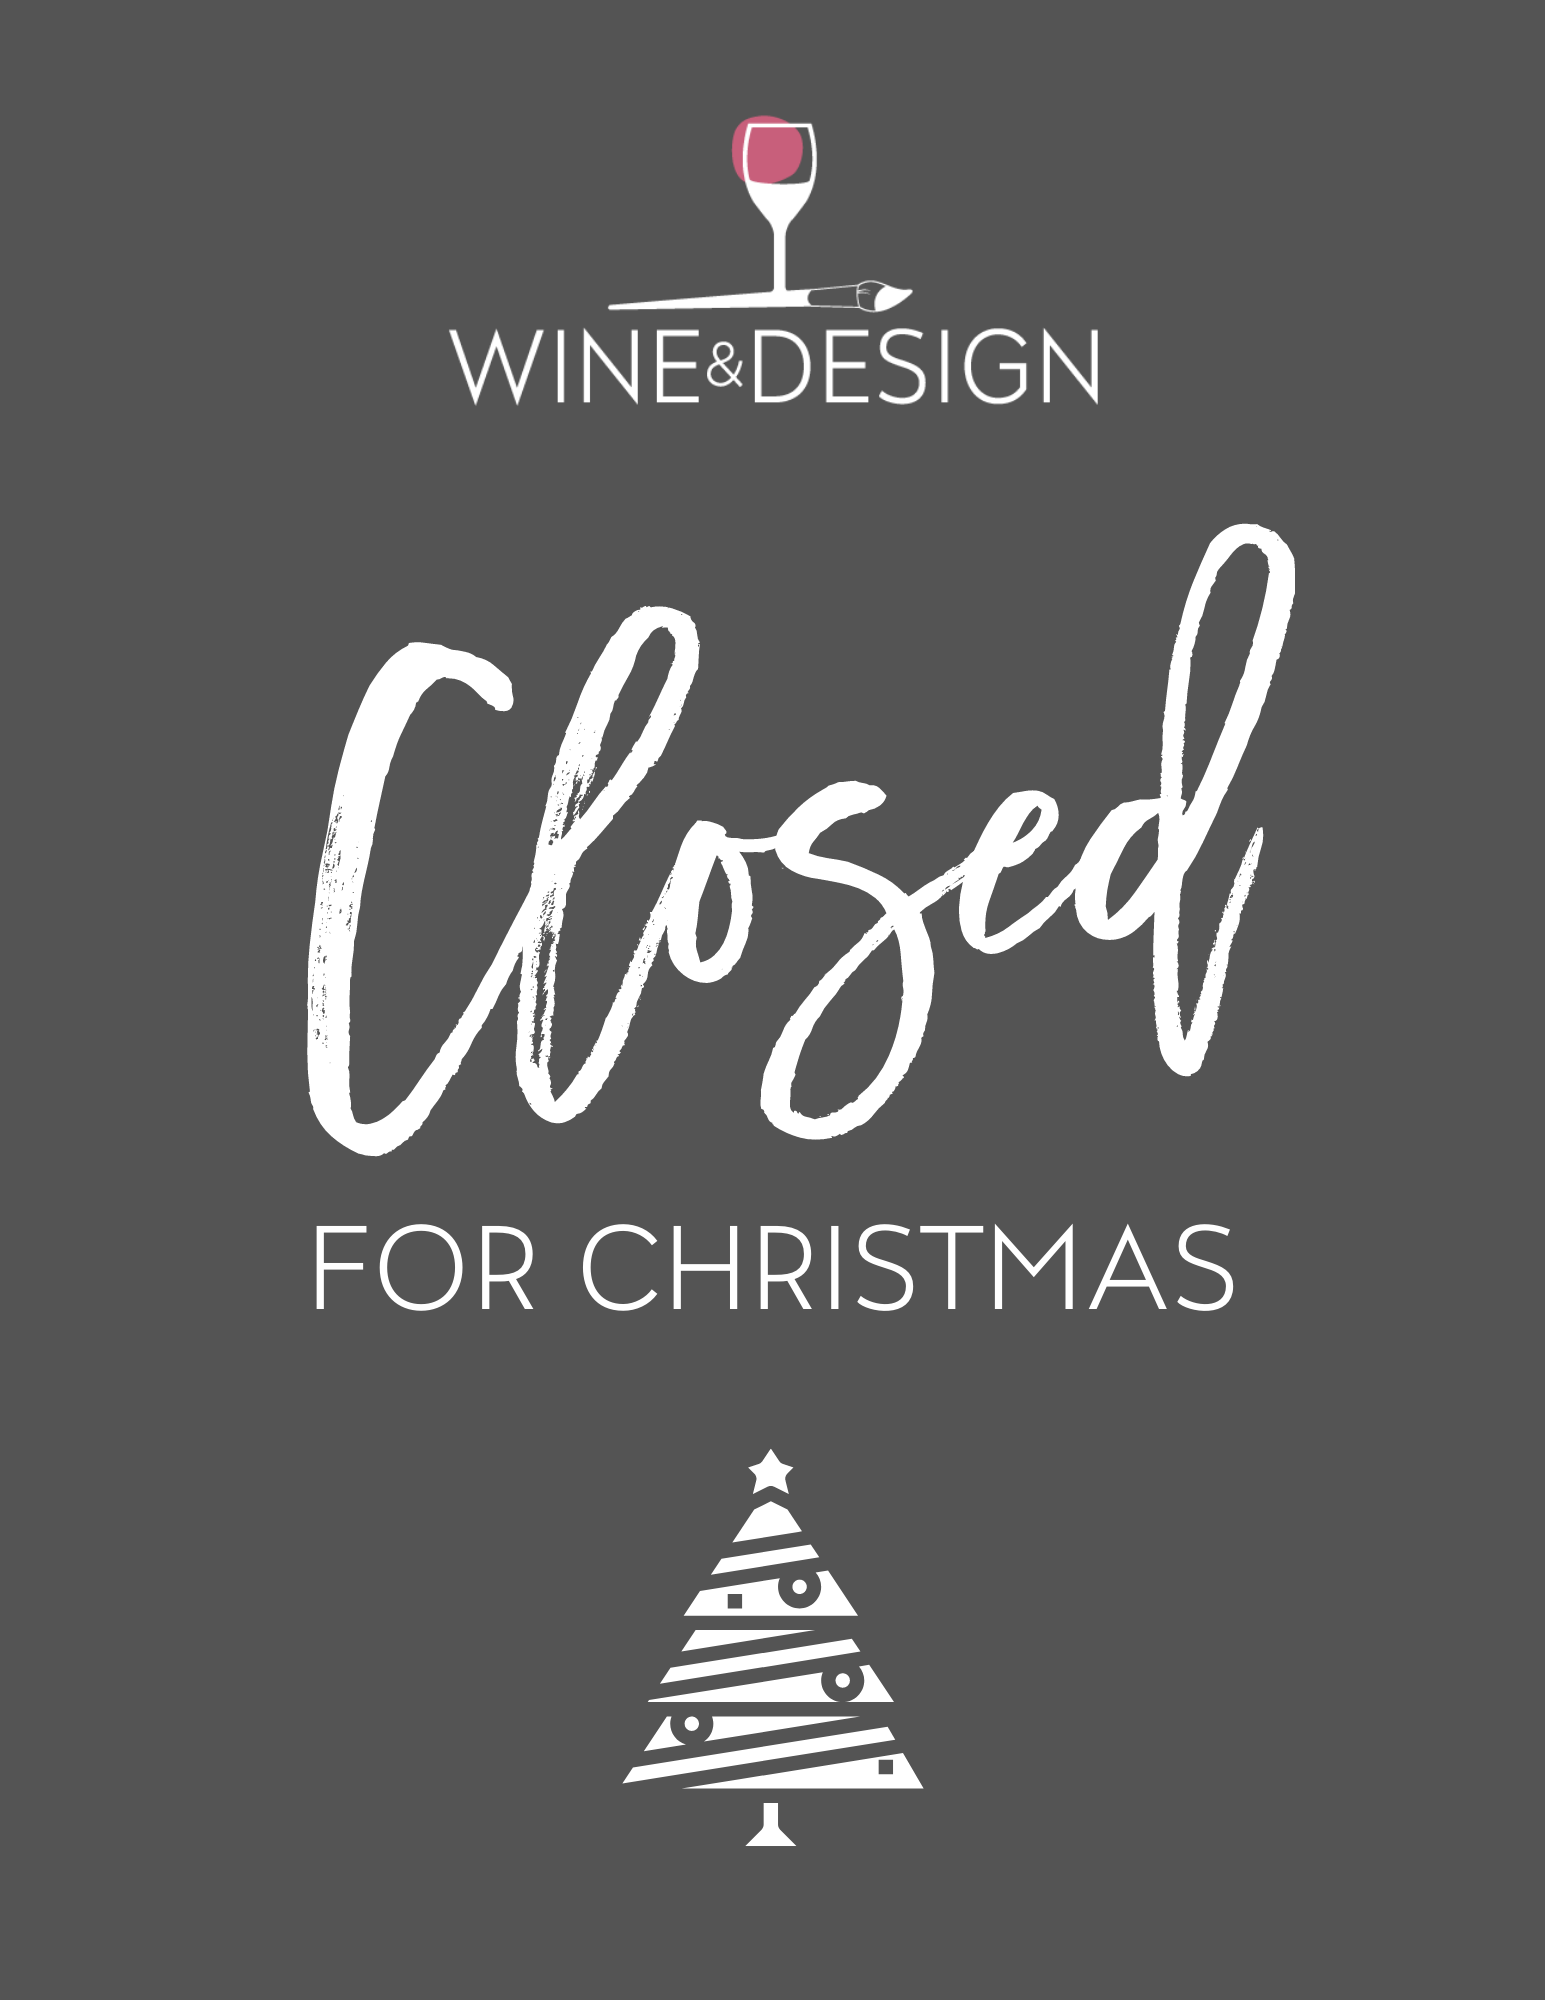 Closed for Christmas!